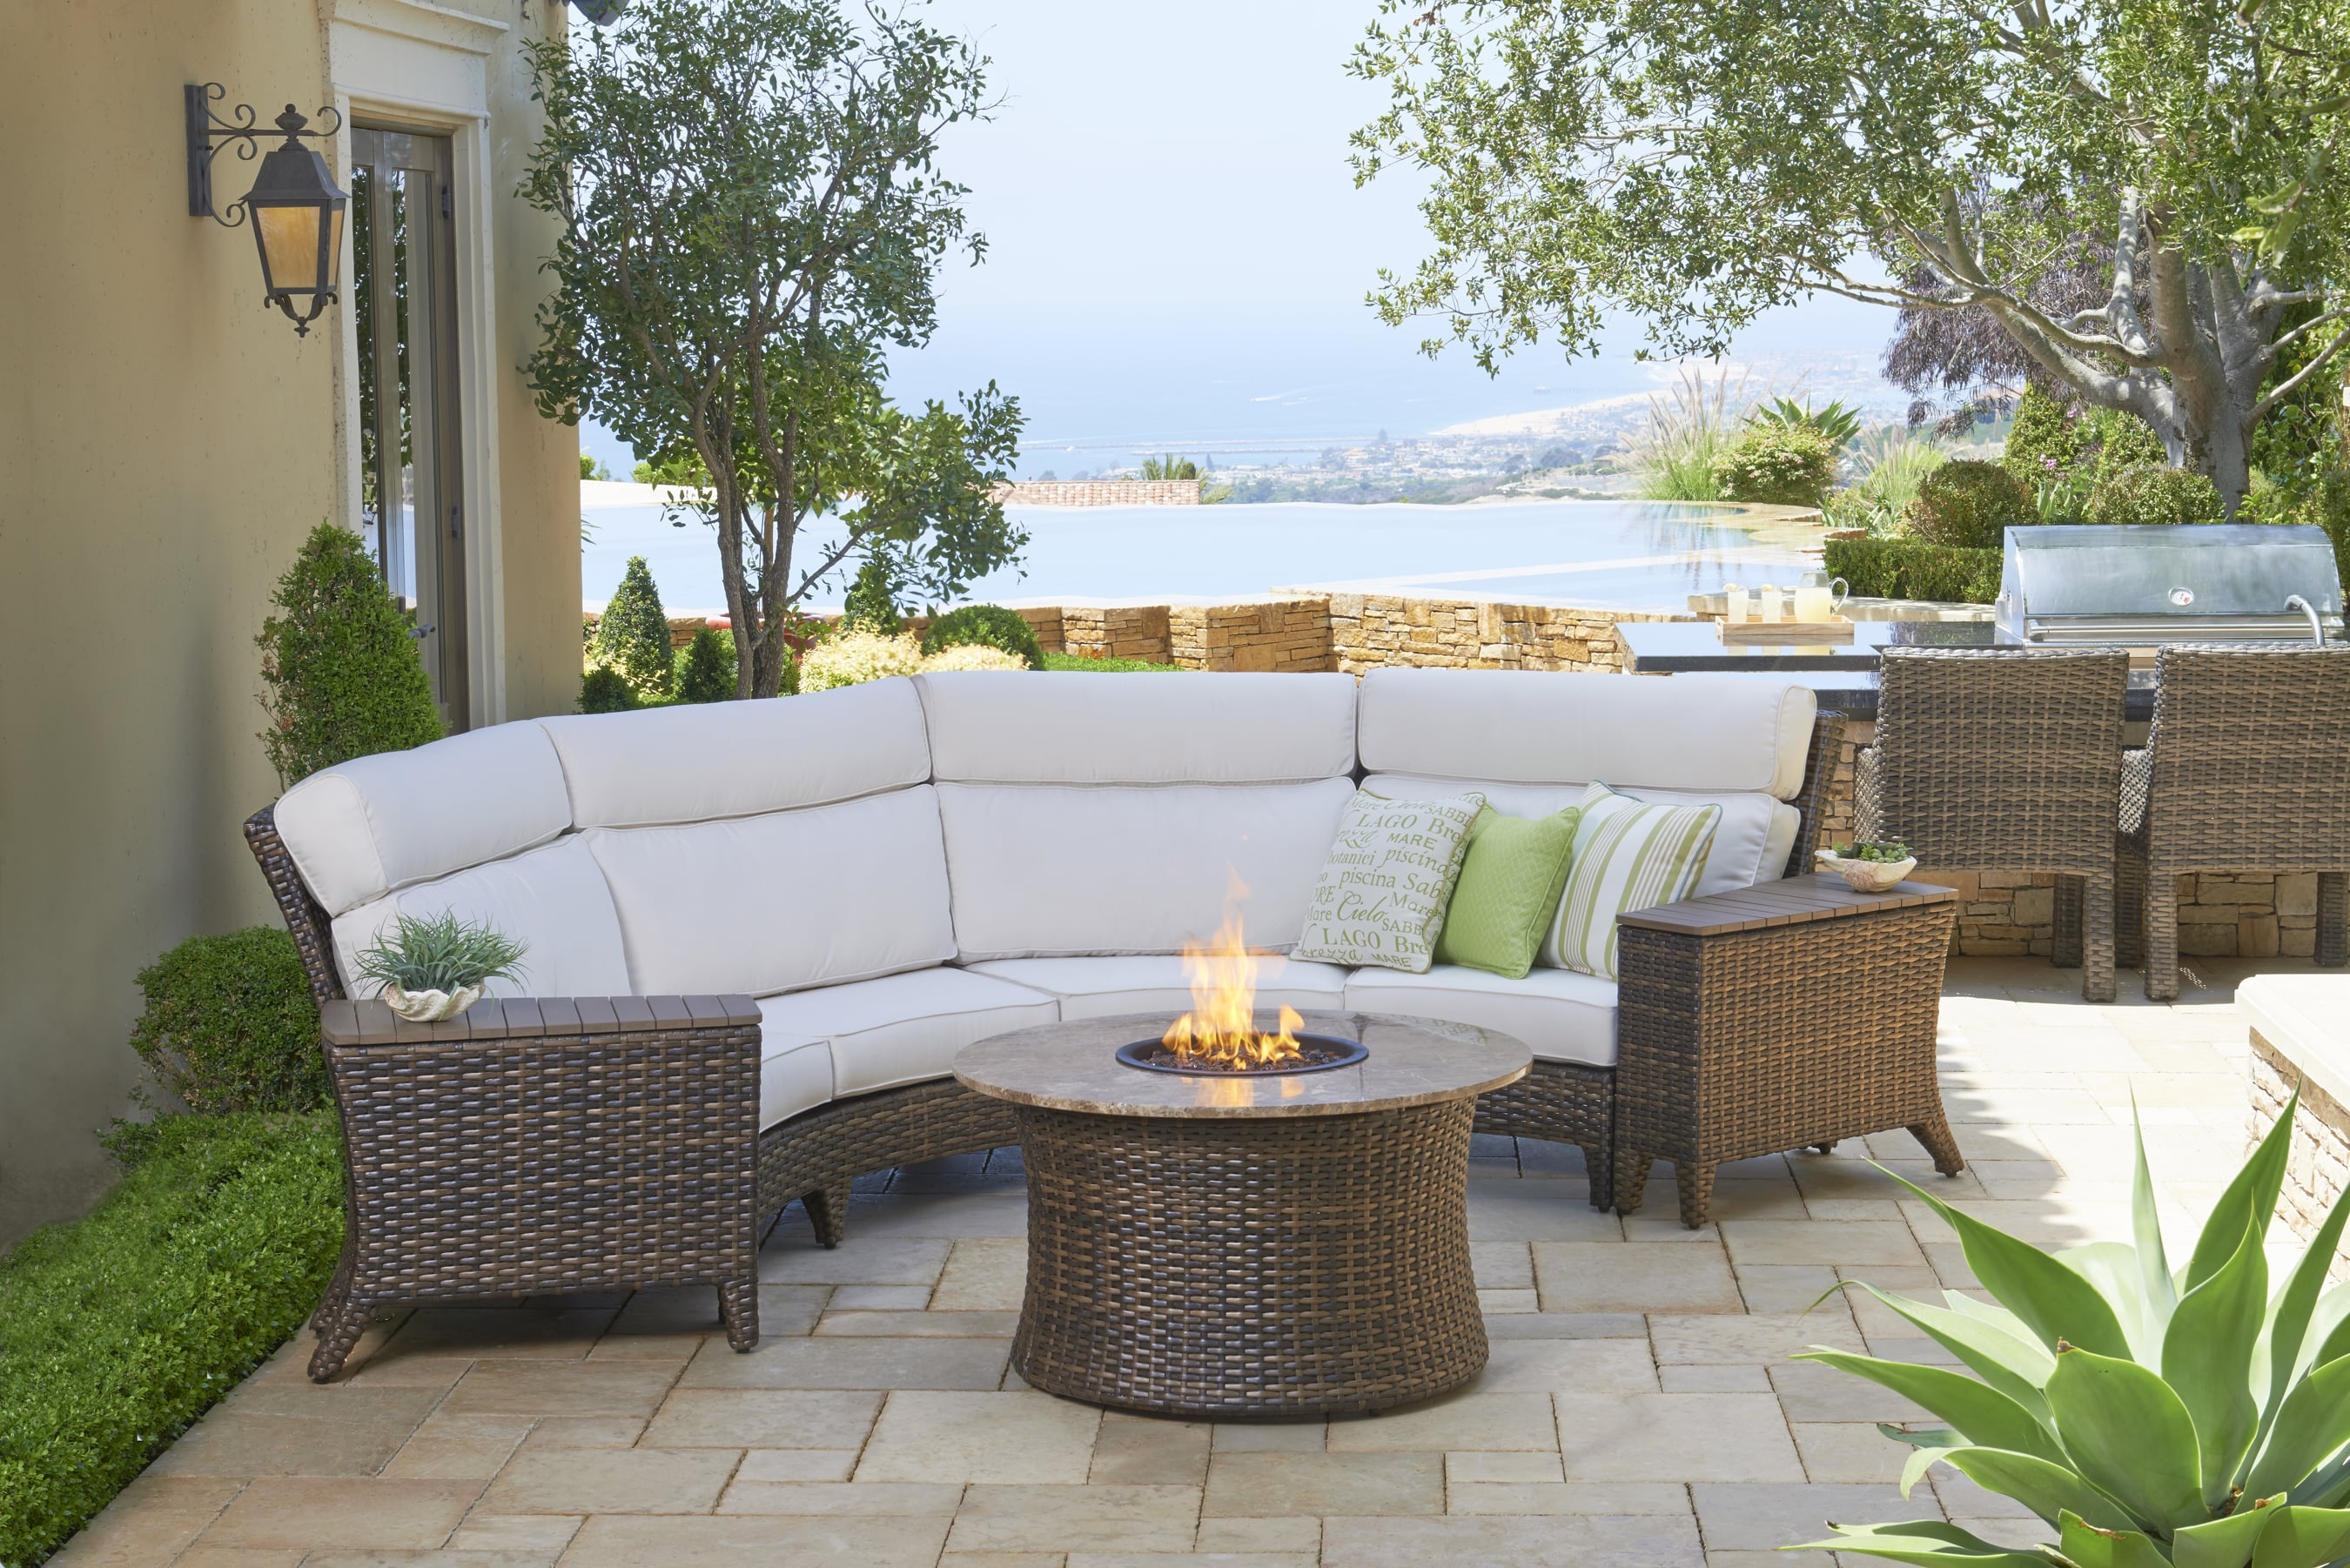 Avant Sectional - North cape outdoor furniture